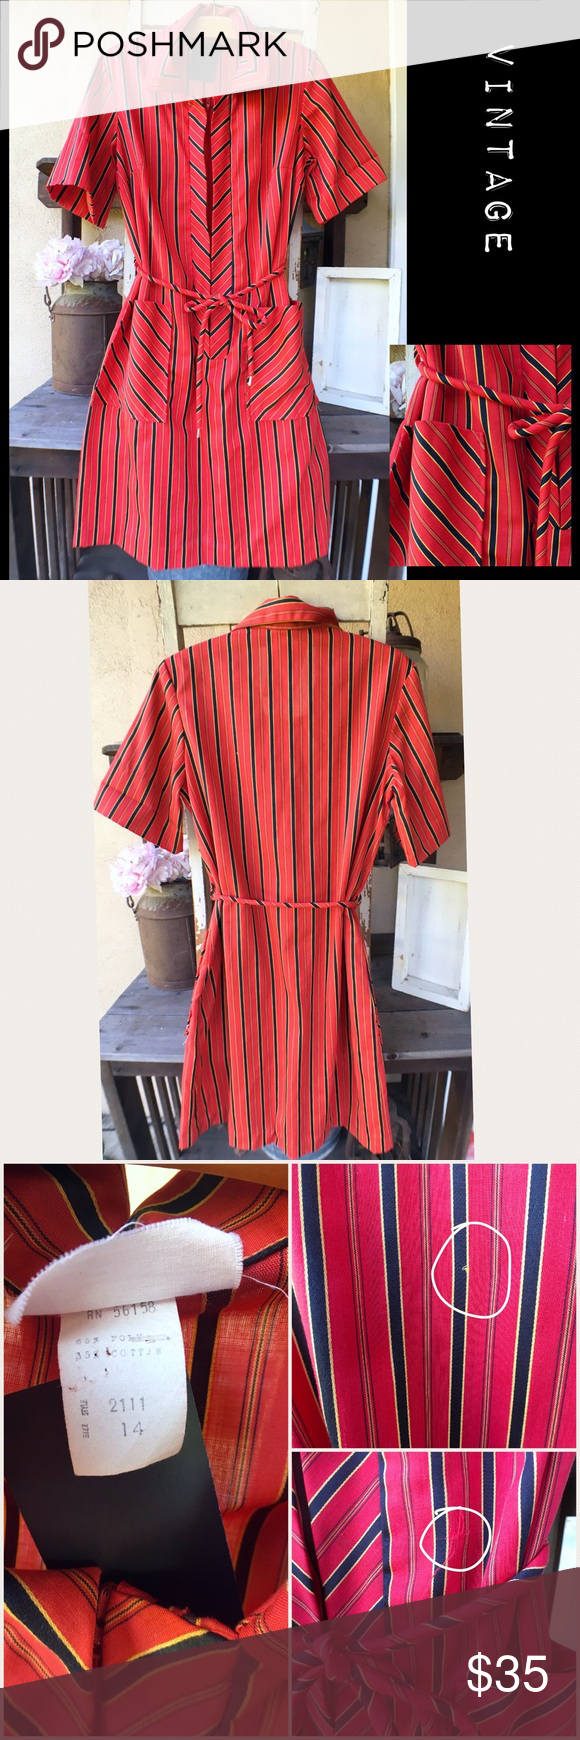 Striped vintage zipup collared dress rope tying red background